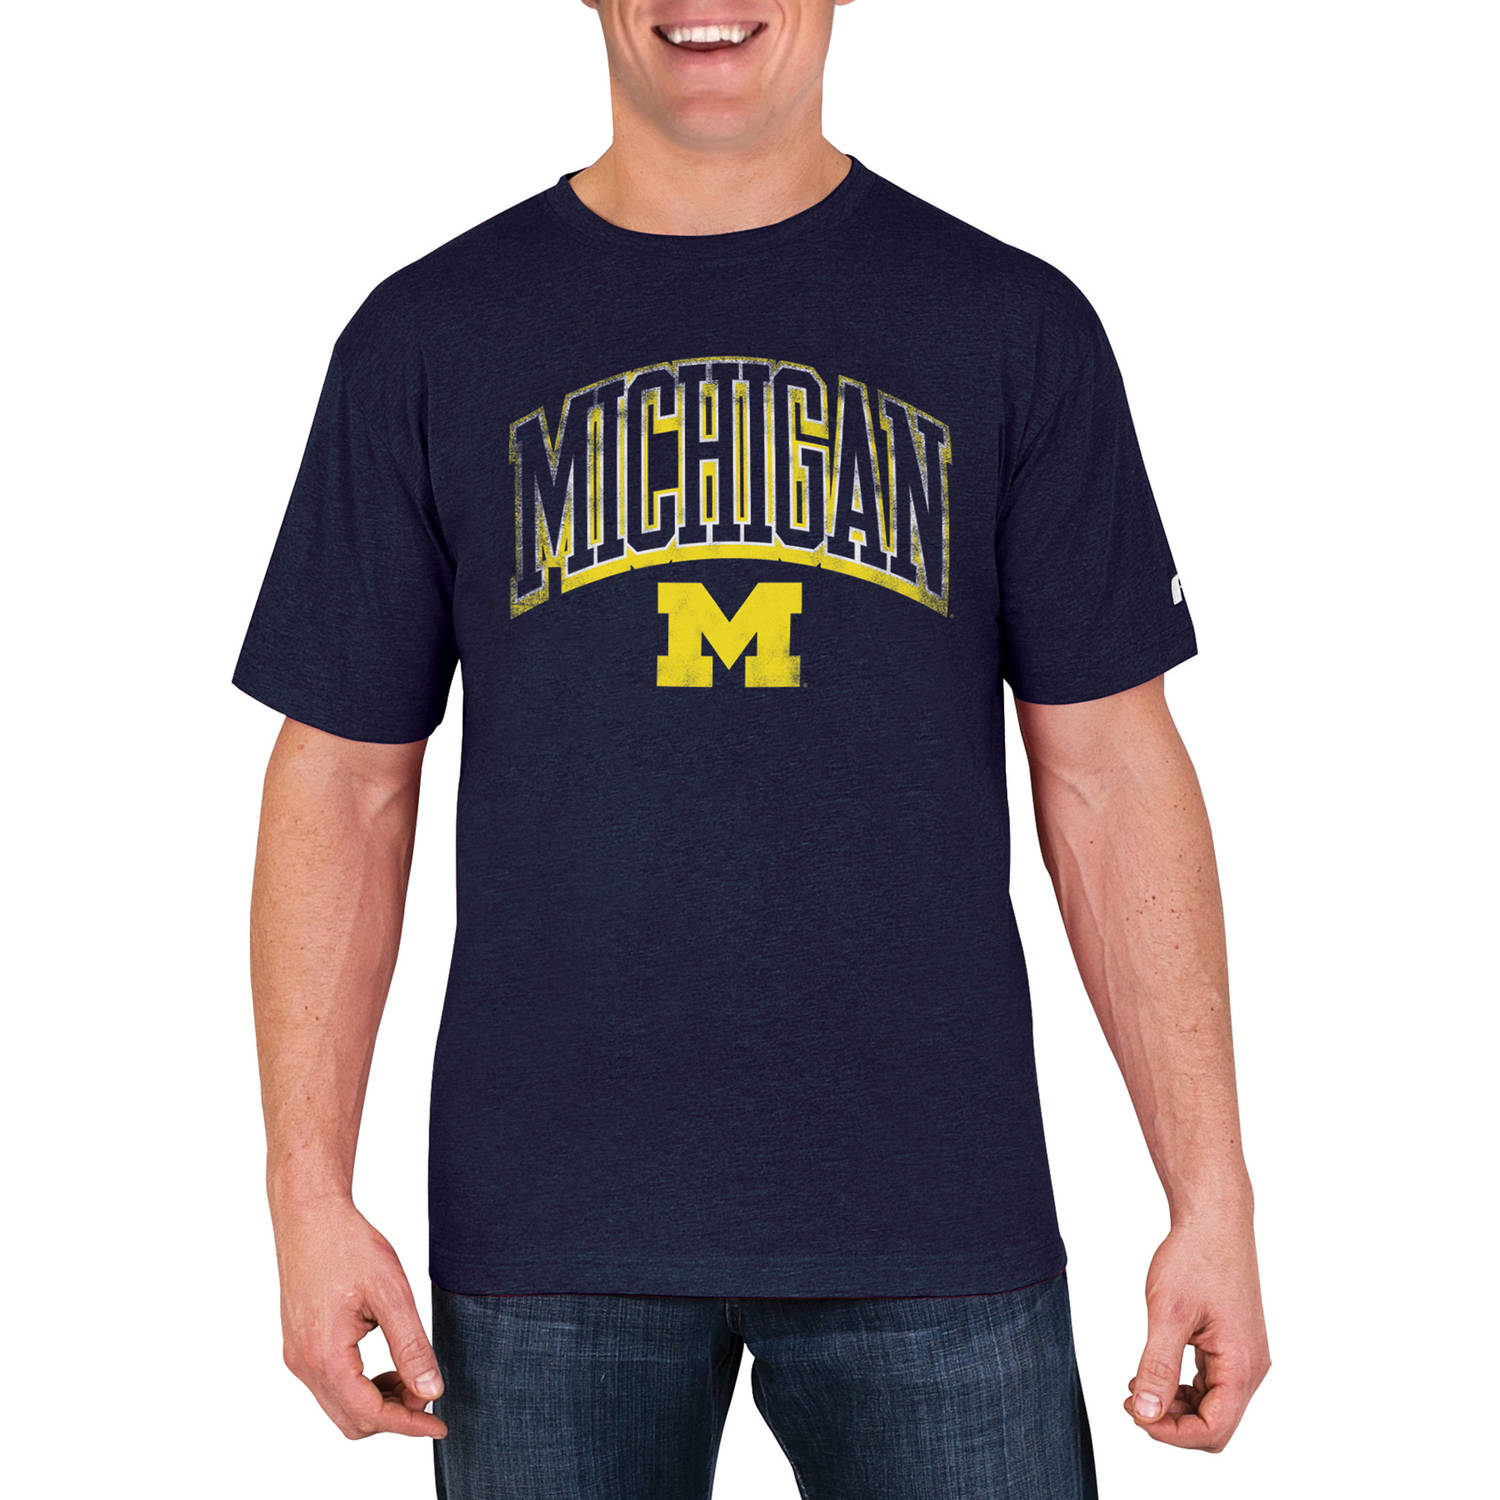 NCAA Michigan Wolverines Men's Cotton/Poly Blend T-Shirt